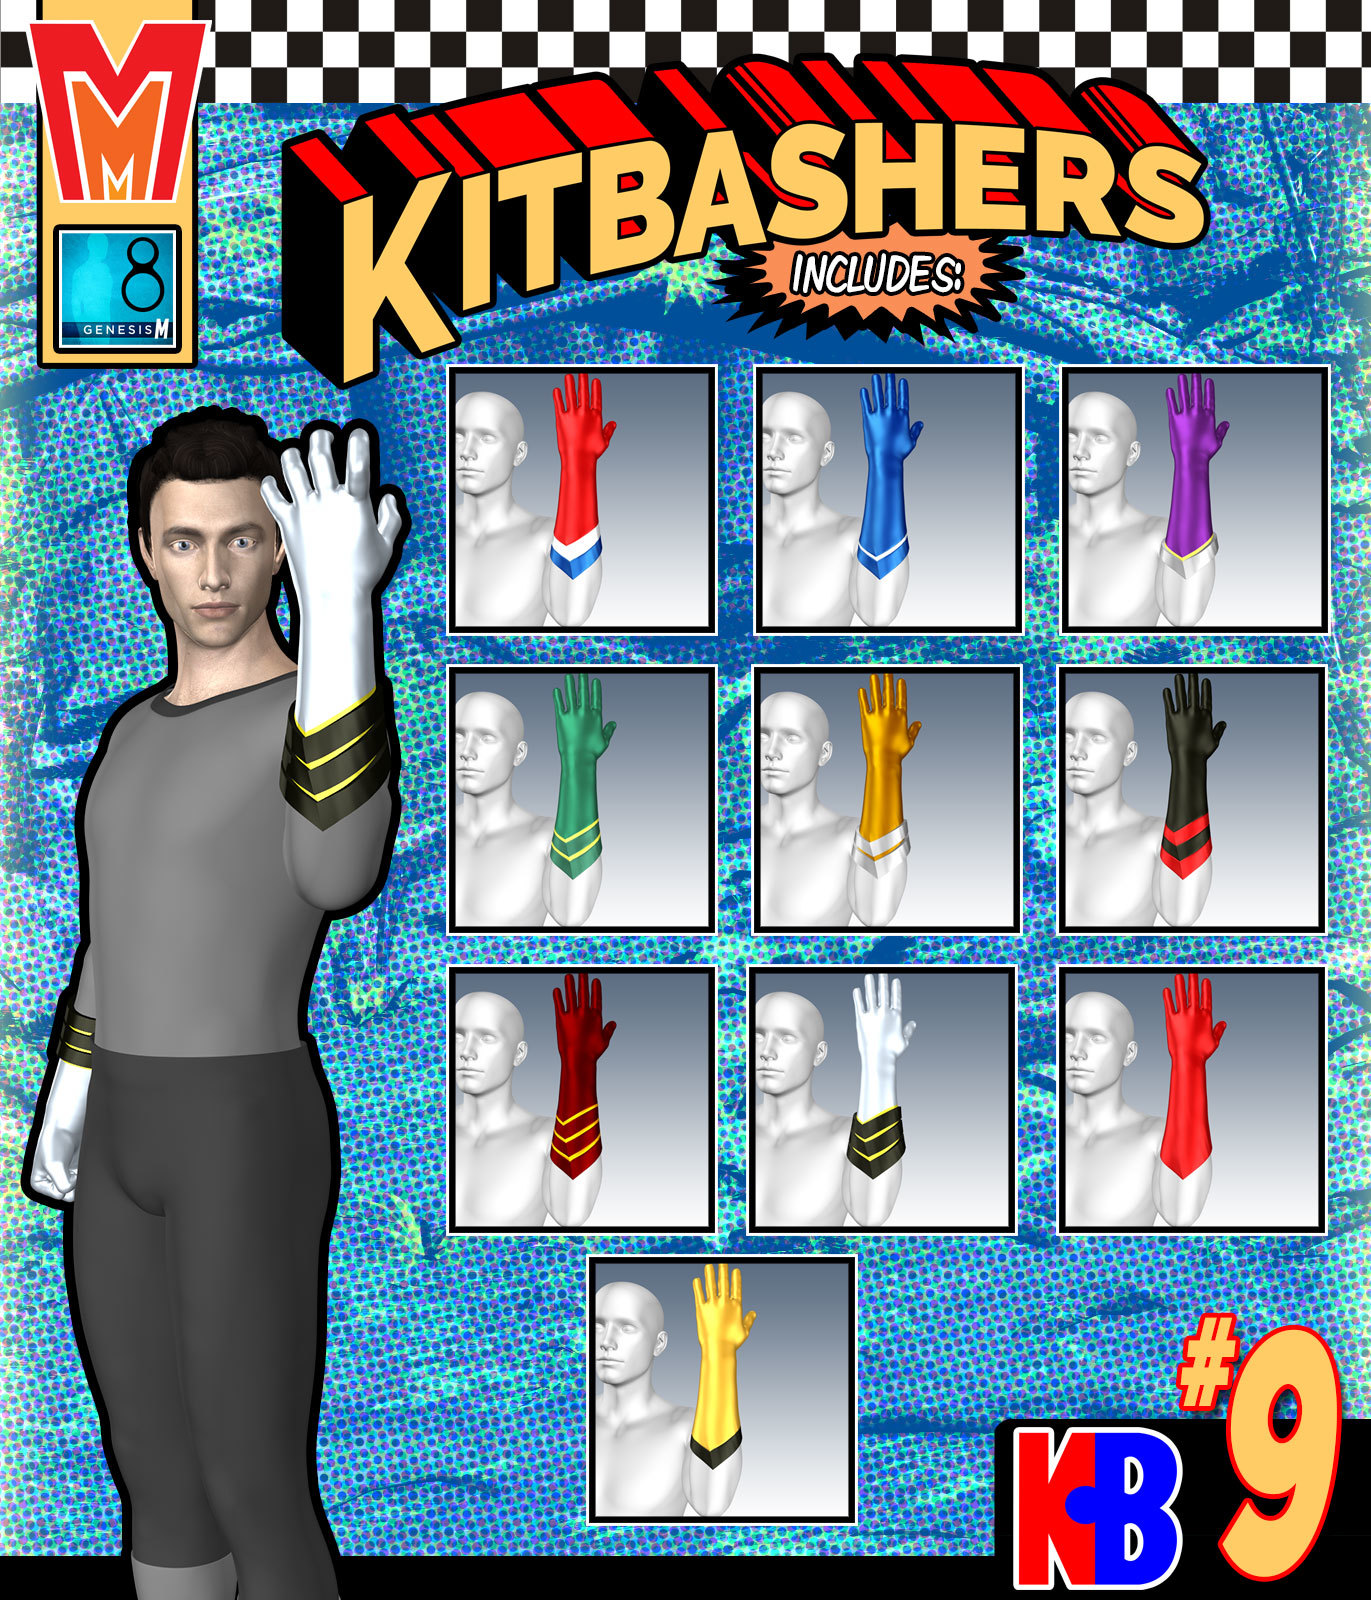 Kitbashers 009 MMG8M by MightyMite